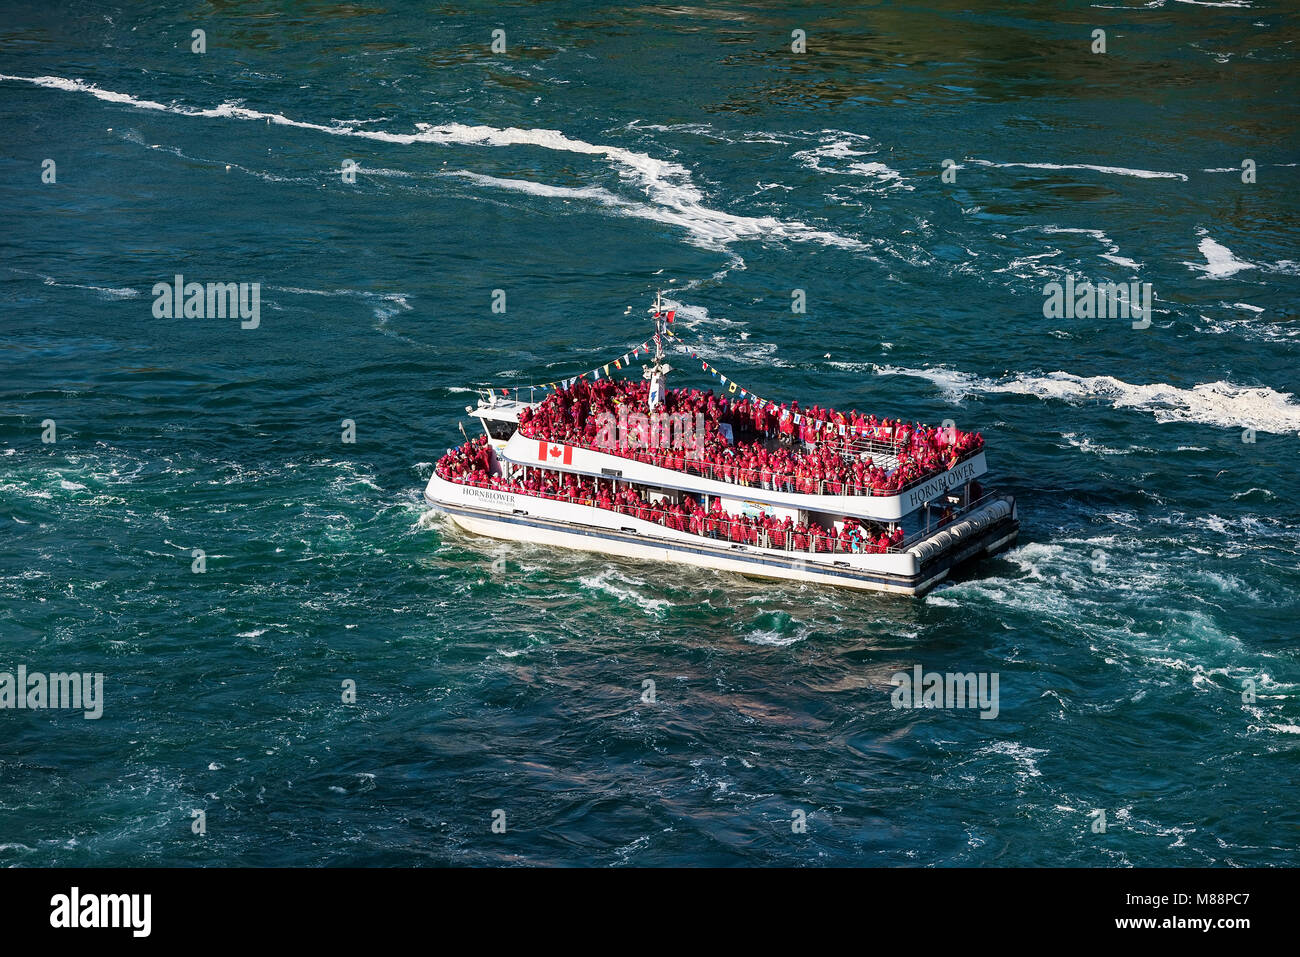 Sightseeing boat approaches Horseshoe Falls, Niagra Falls, Ontario, Canada - Stock Image